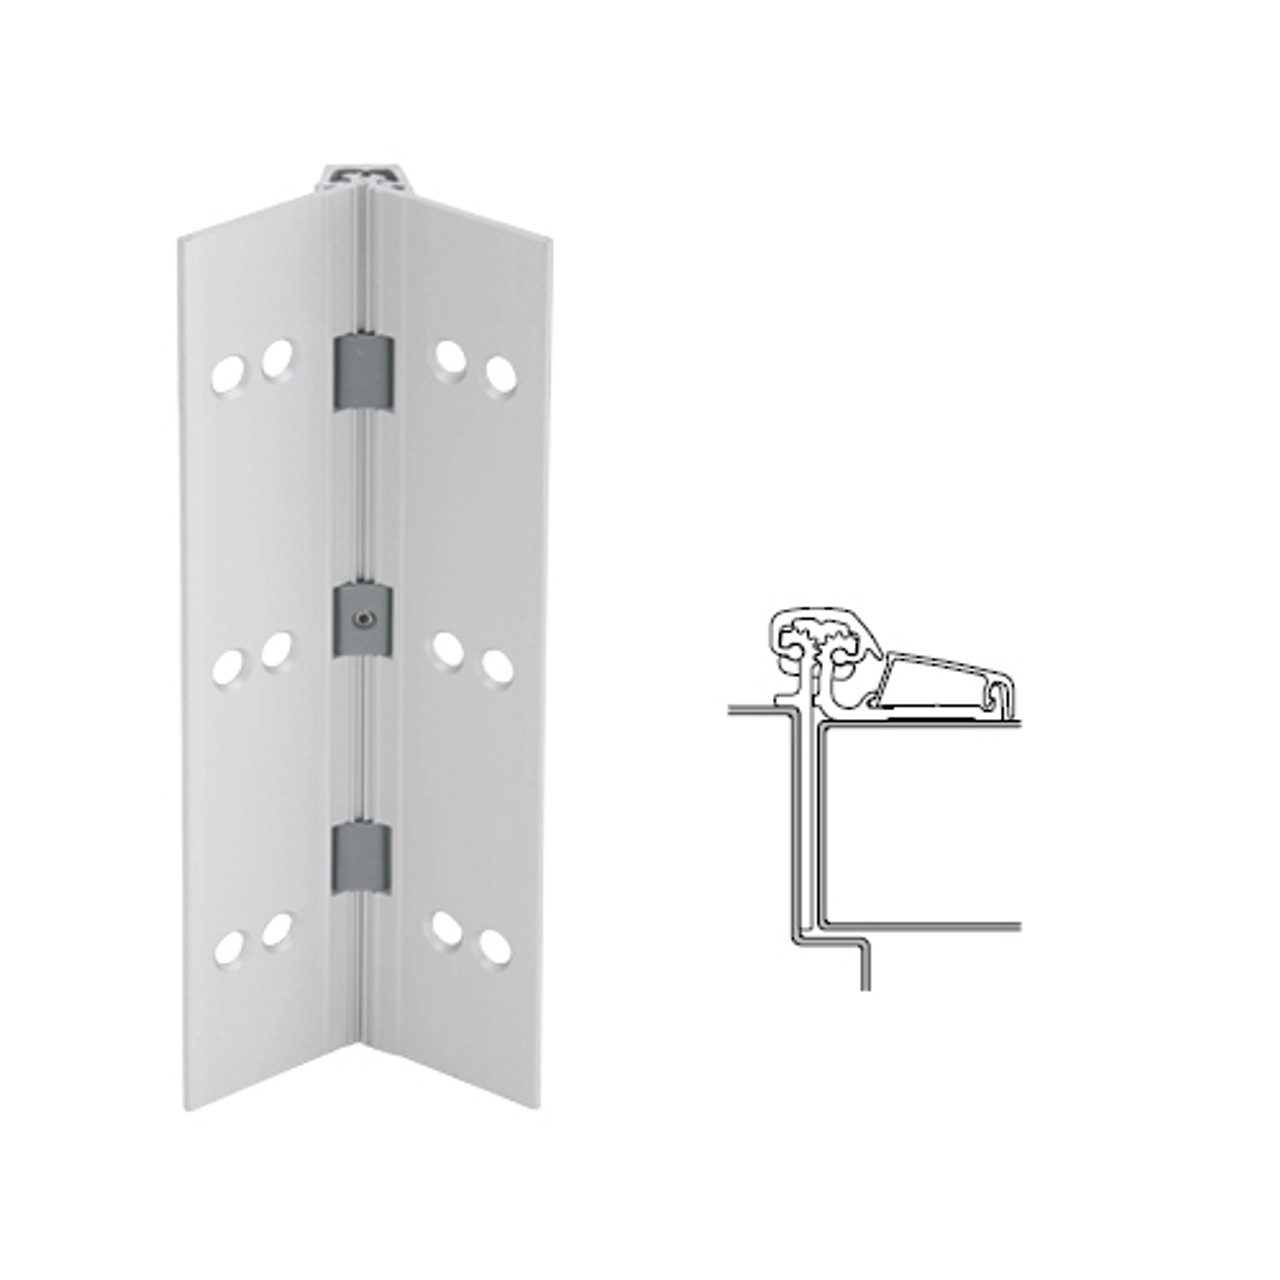 054XY-US28-95-SECWDWD IVES Adjustable Half Surface Continuous Geared Hinges with Security Screws - Hex Pin Drive in Satin Aluminum